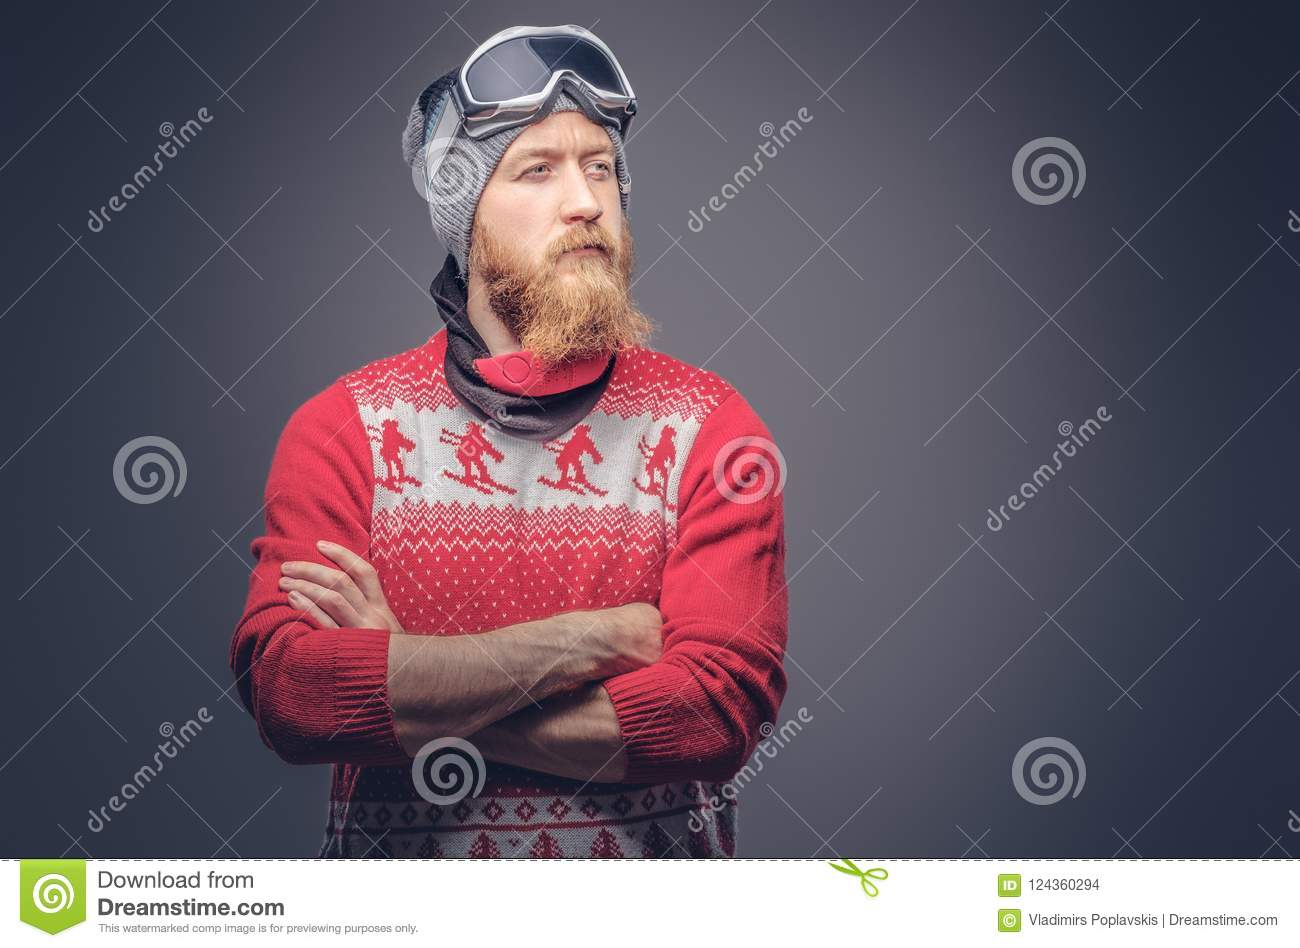 Portrait of a brutal redhead bearded male in a winter hat with protective glasses dressed in a red sweater, posing with